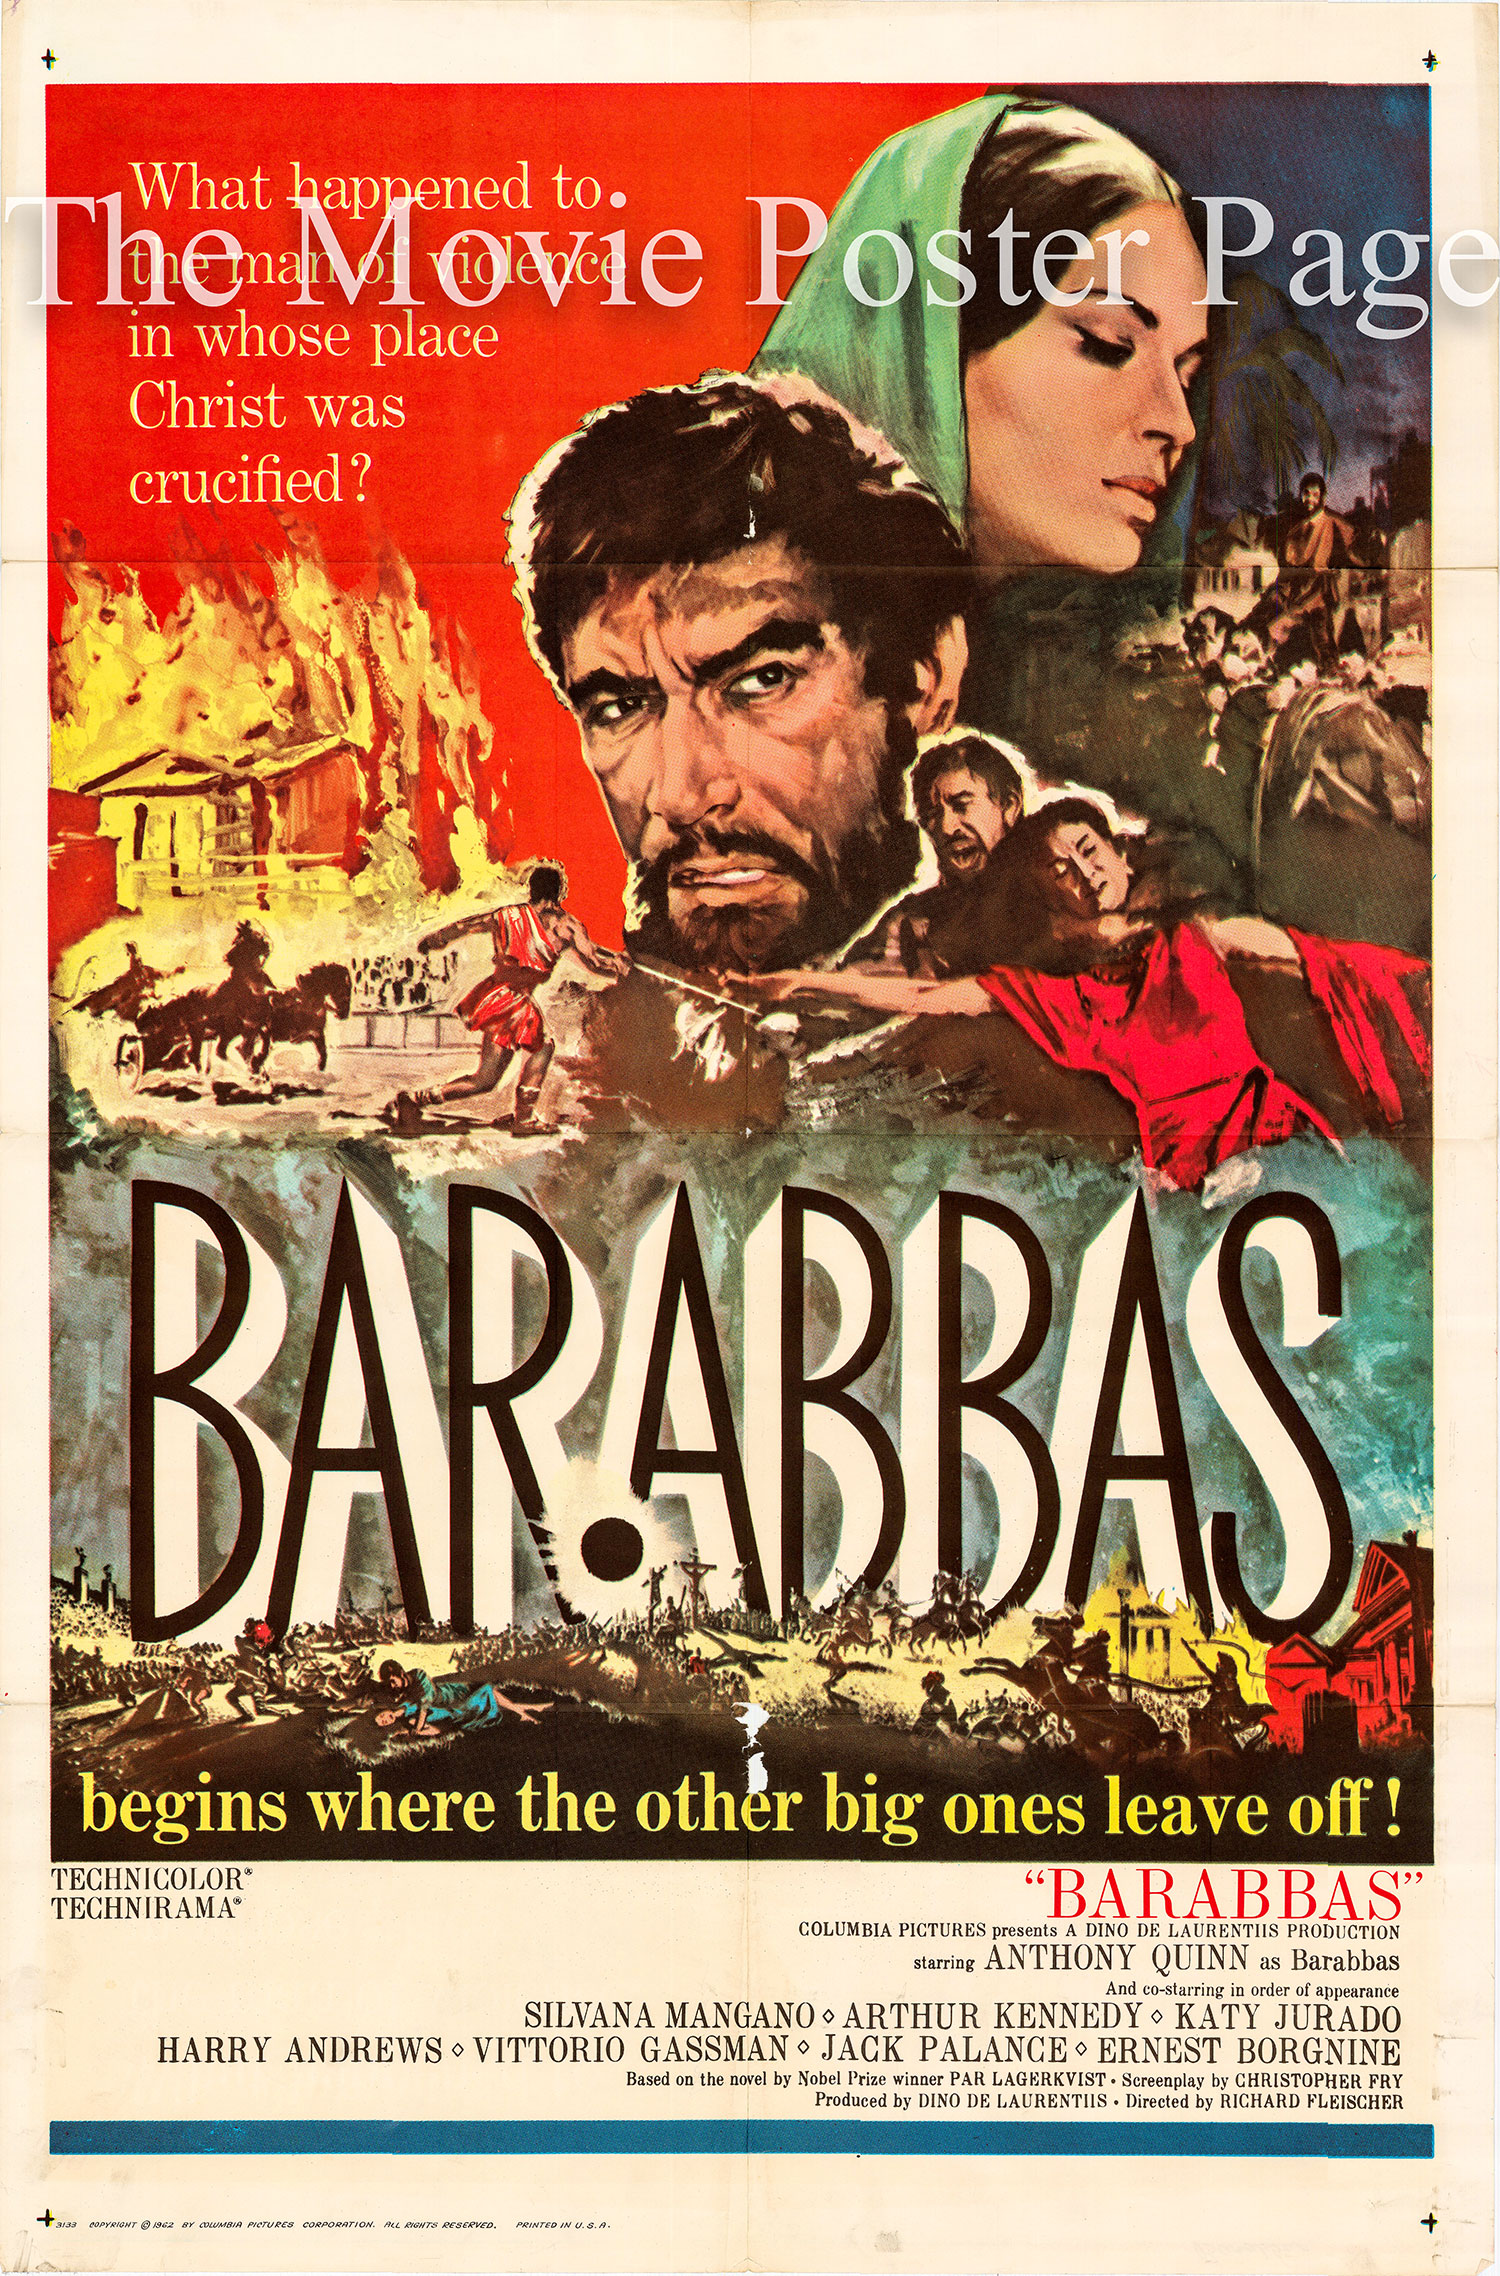 Pictured is a US one-sheet poster for the 1962 Richard Fleischer film Barabbas starring Anthony Quinn.